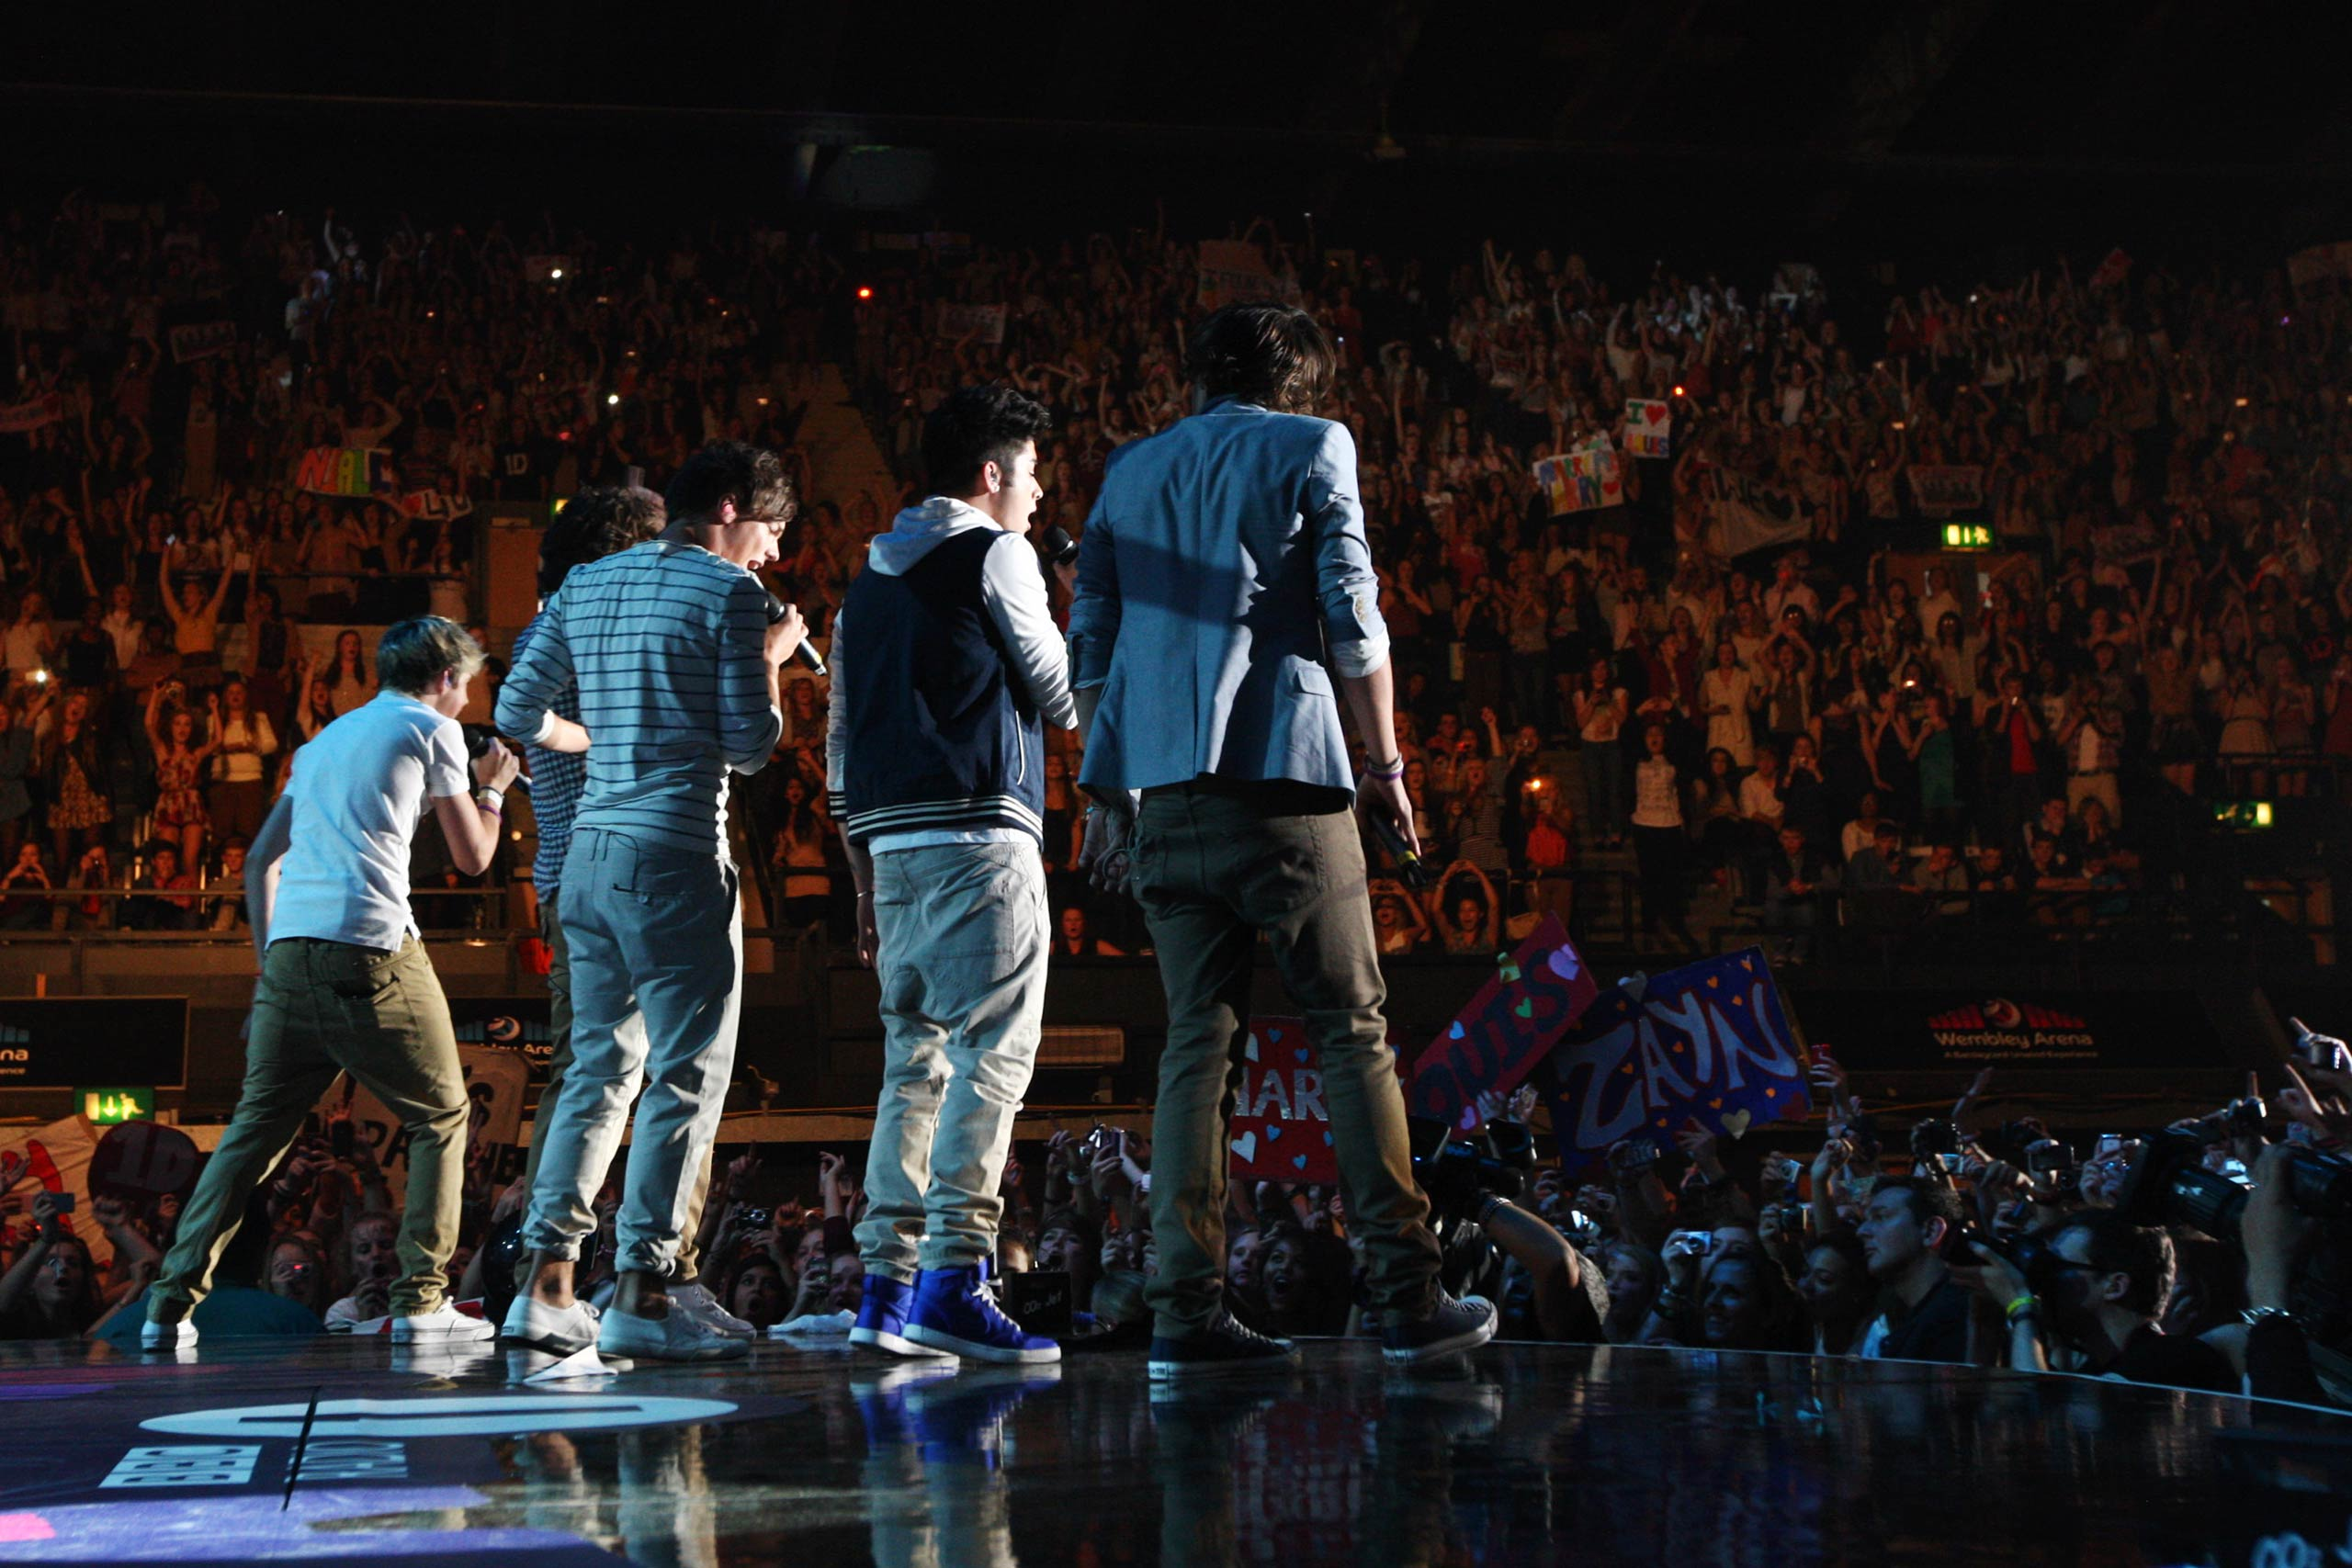 One Direction perform at the BBC Teen Awards at Wembley arena in London, United Kingdom in 2011.